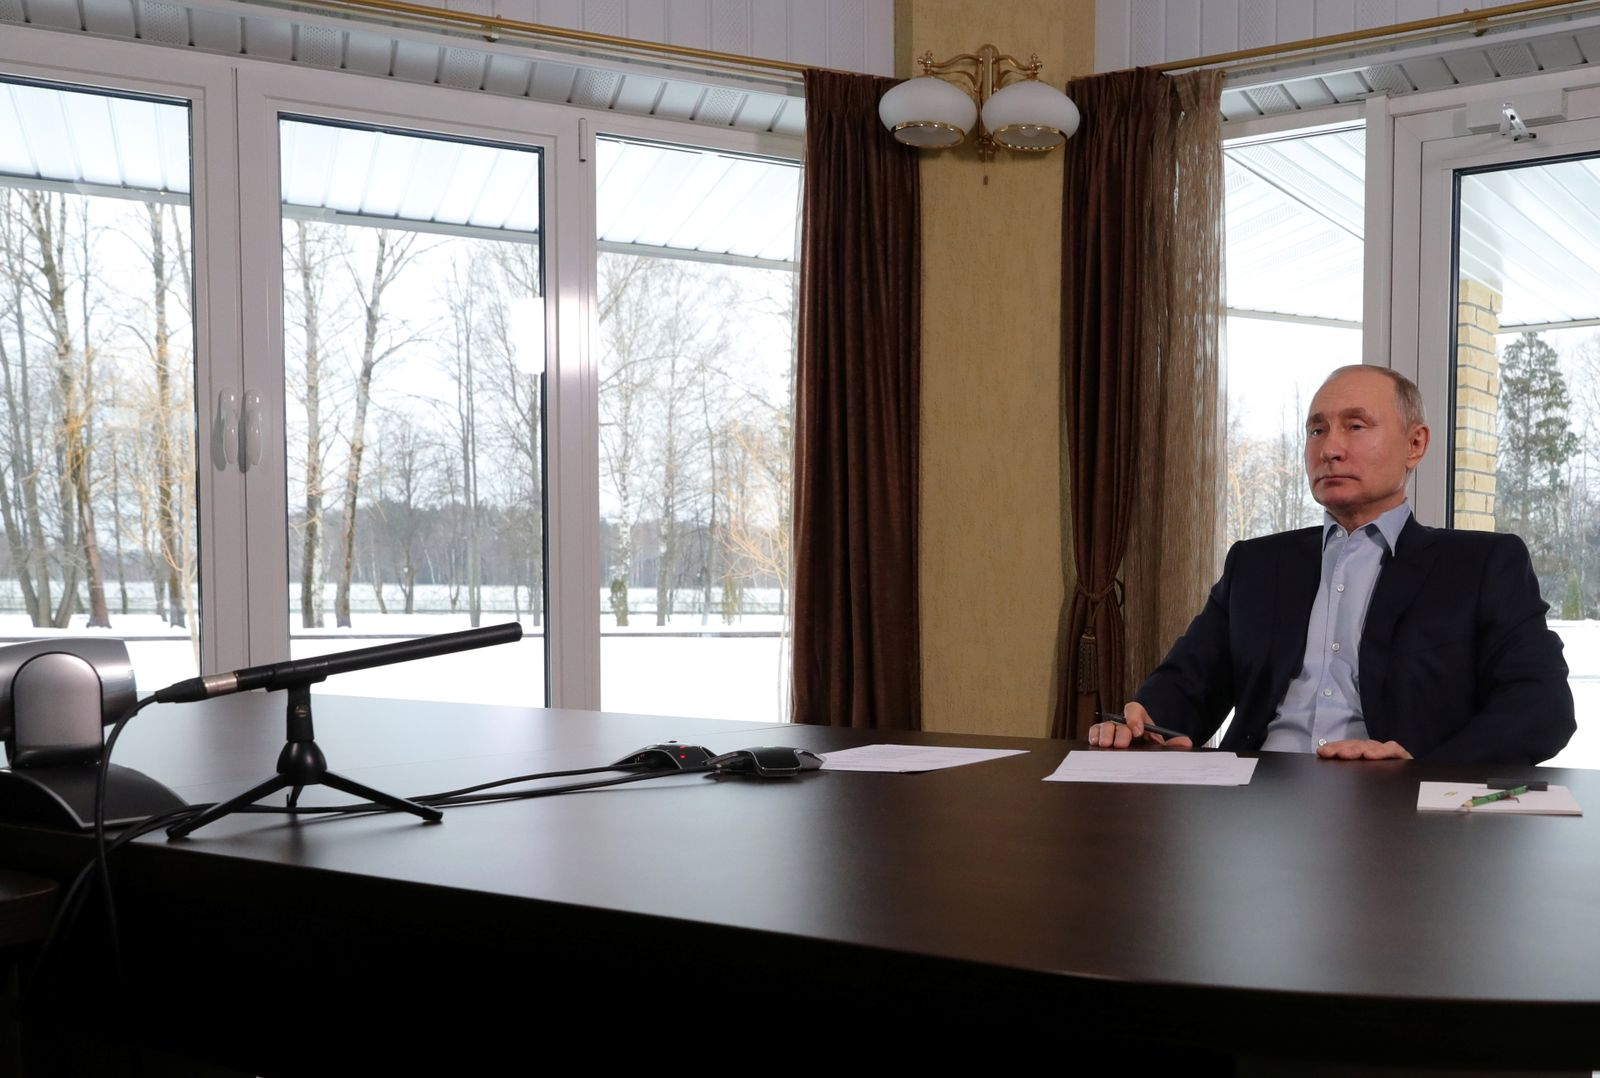 Russian President Putin attends a meeting with university students via a video conference call in Zavidovo